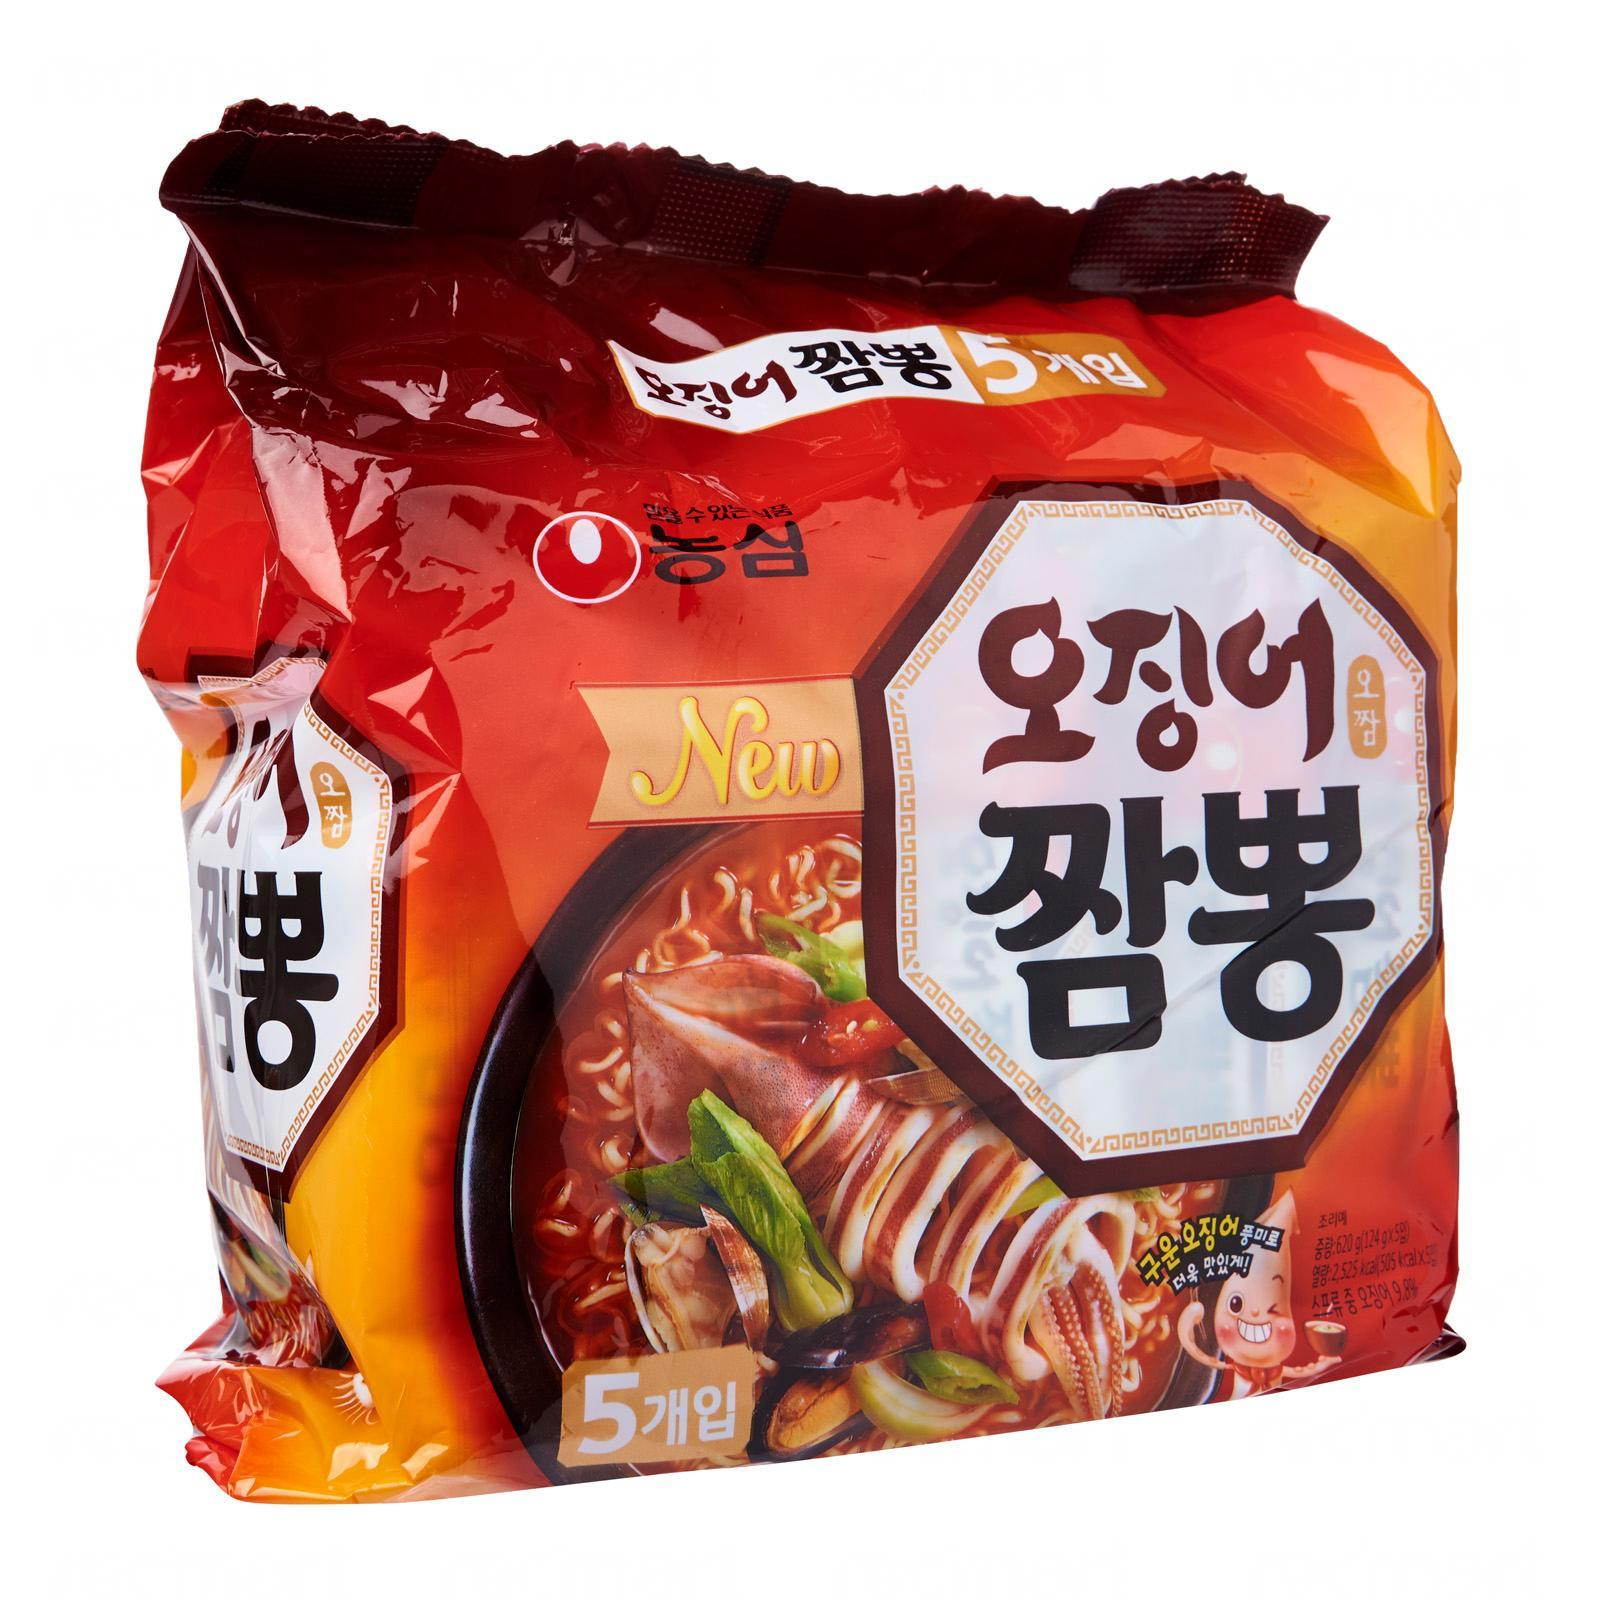 Nongshim Korean Champong Spicy Squid Seafood Instant Ramen Noodles 5s